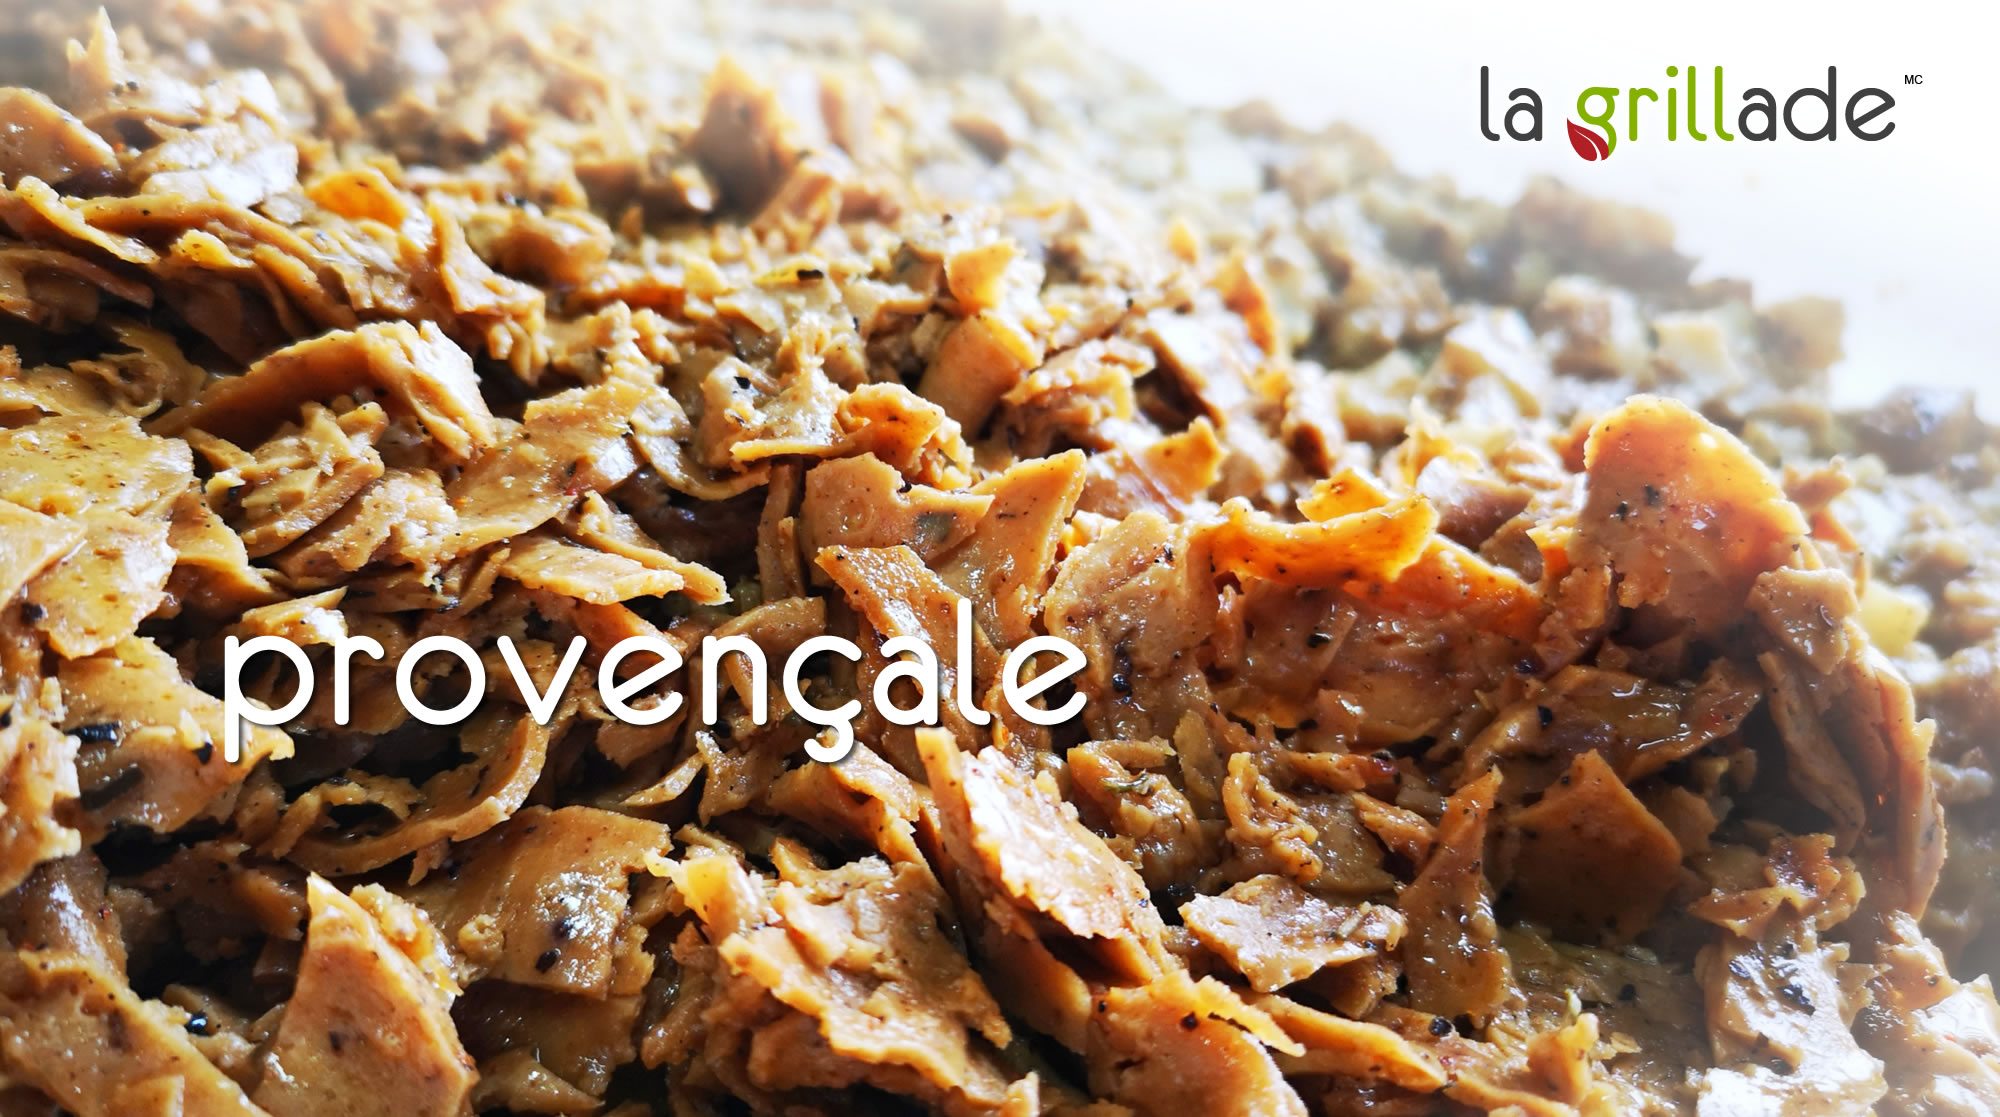 provencale - Contact